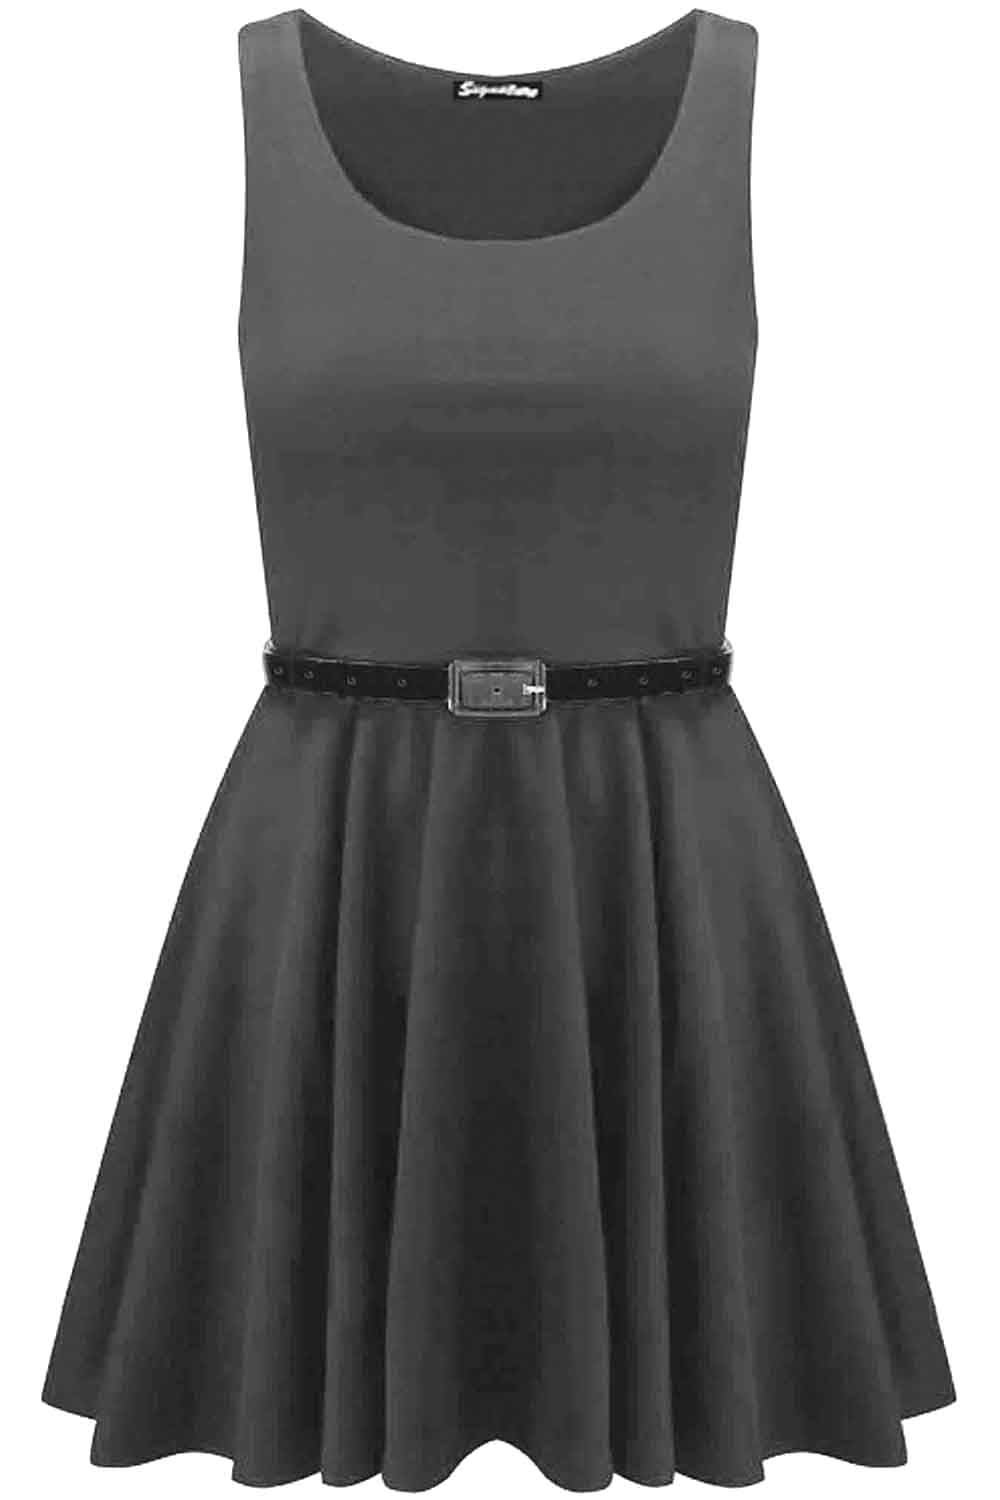 New-Womens-Ladies-Belted-Sleeveless-Franki-Flared-Party-Swing-Skater-Dress-Top thumbnail 29